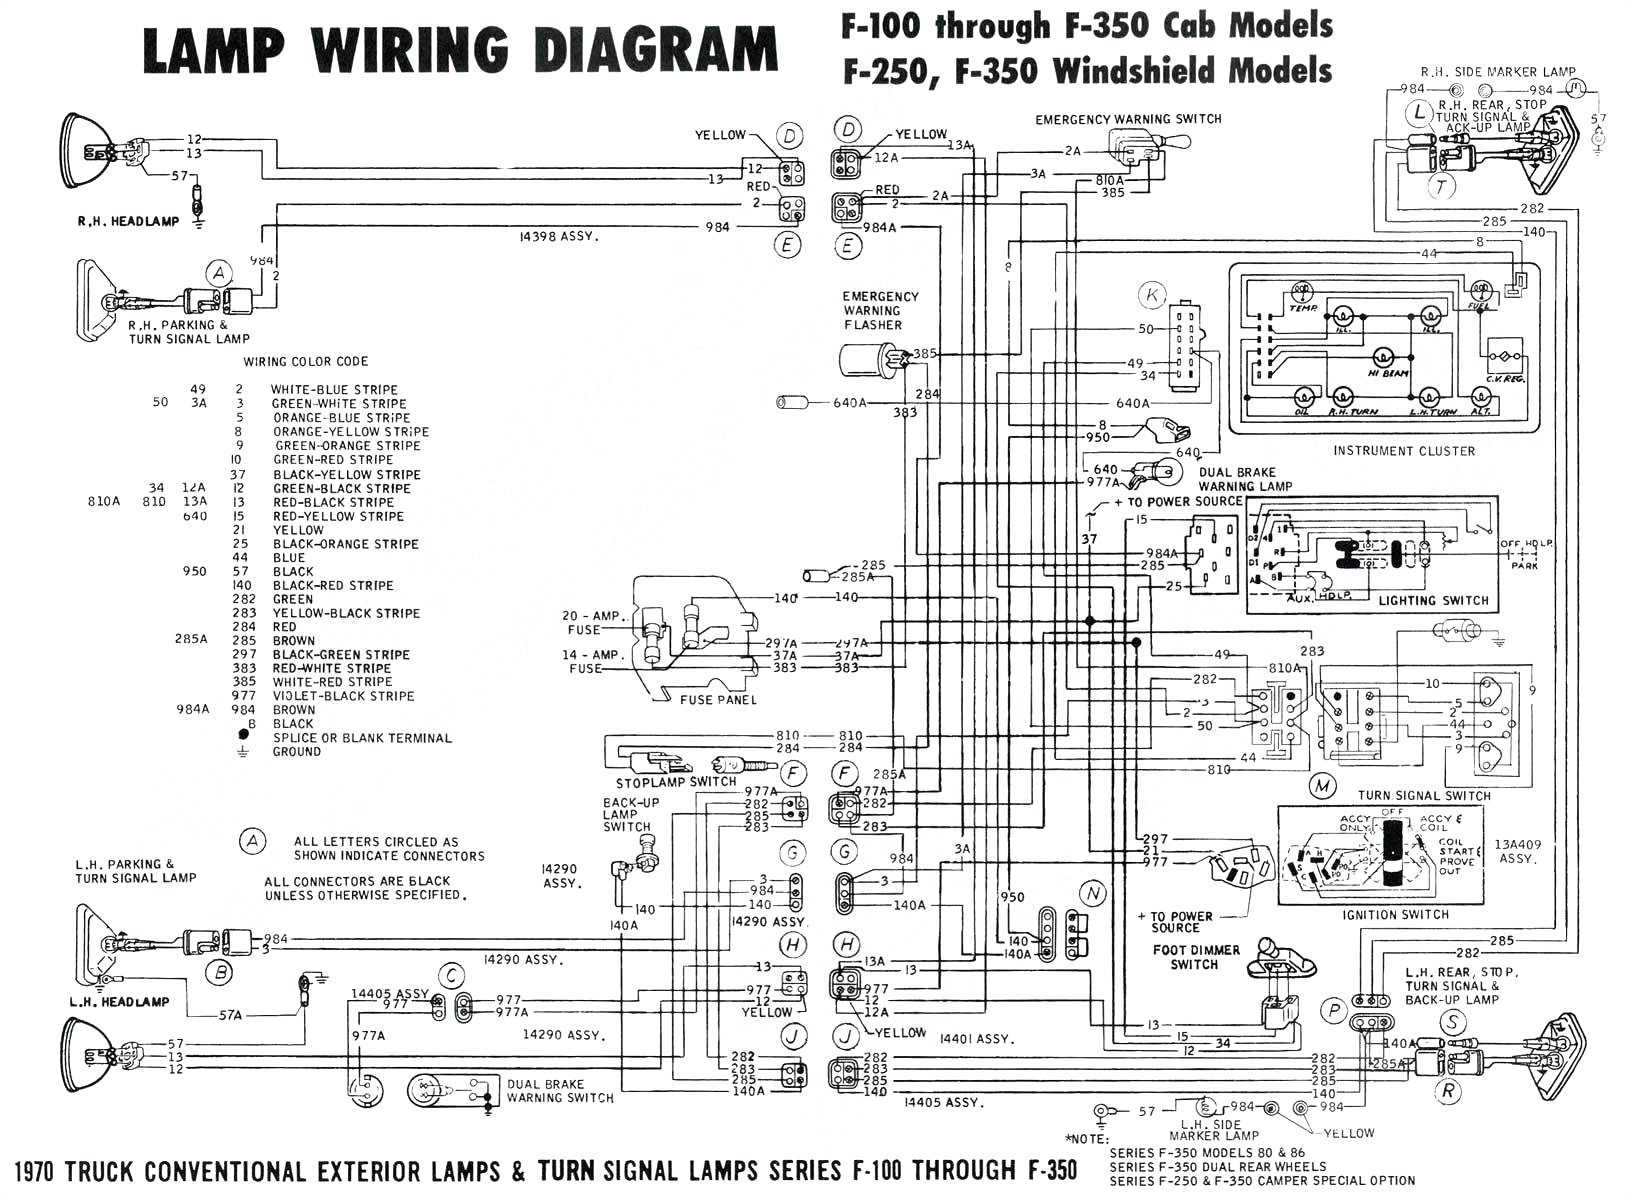 1947 ford headlight switch wiring wiring diagram datasource 1935 ford headlight switch wiring wiring diagrams konsult